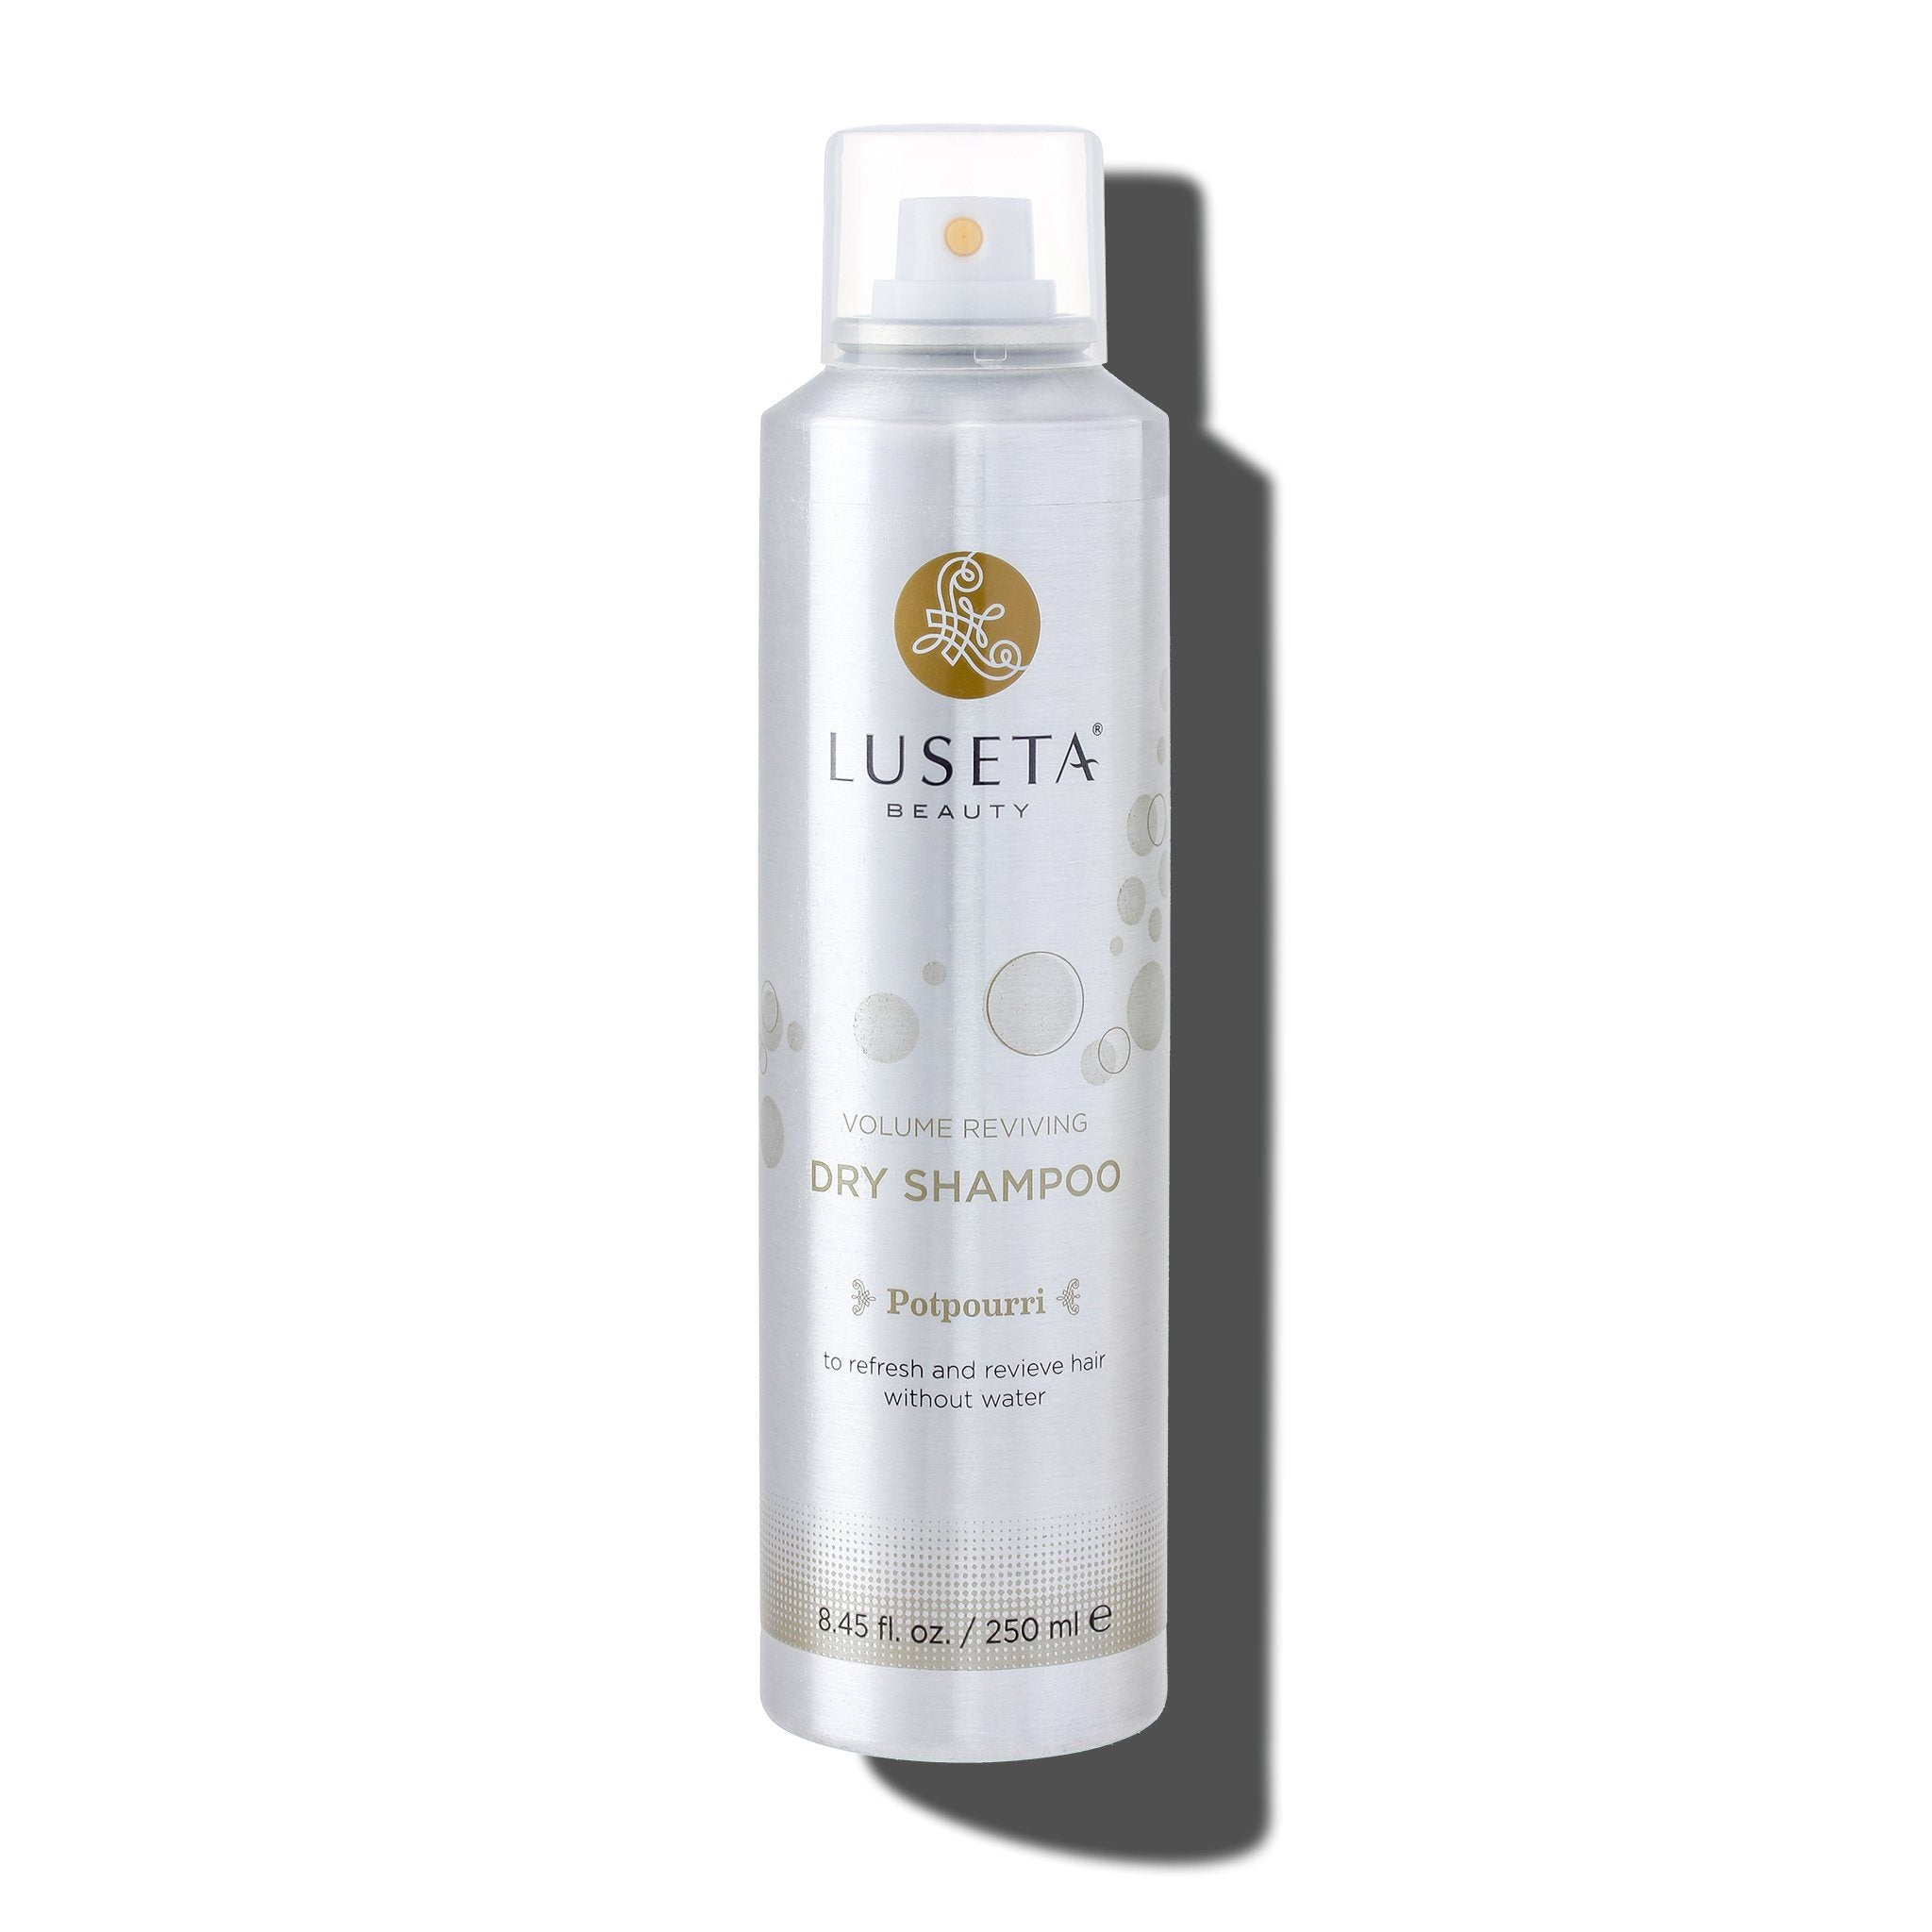 Volume Reviving Dry Shampoo